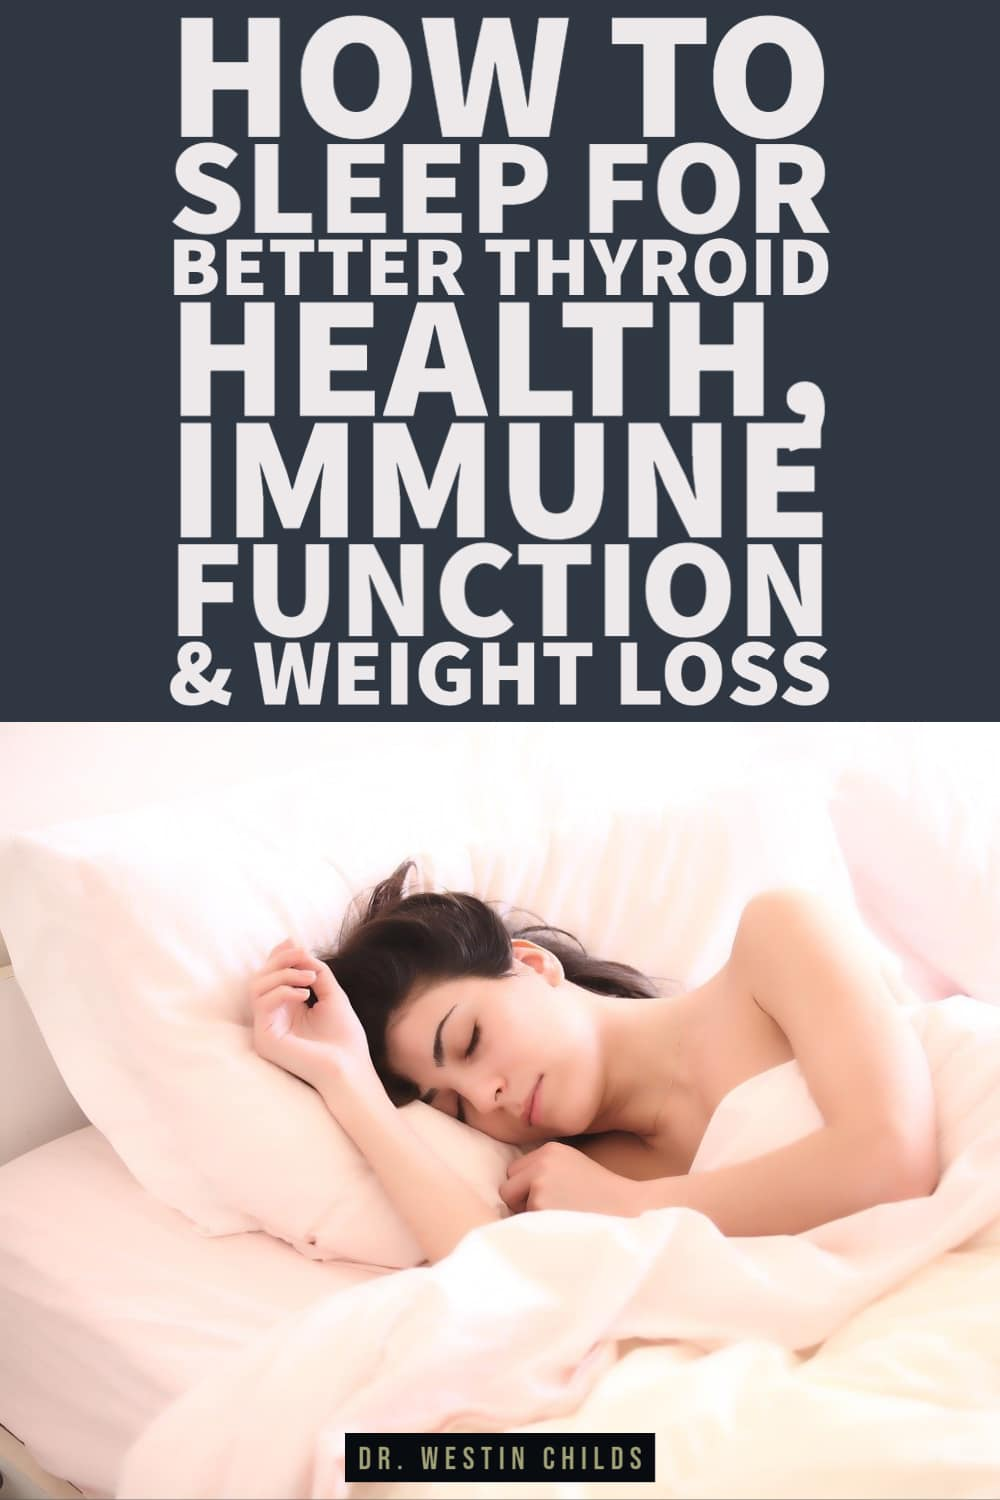 how to sleep for better thyroid health, immune function, and weight loss